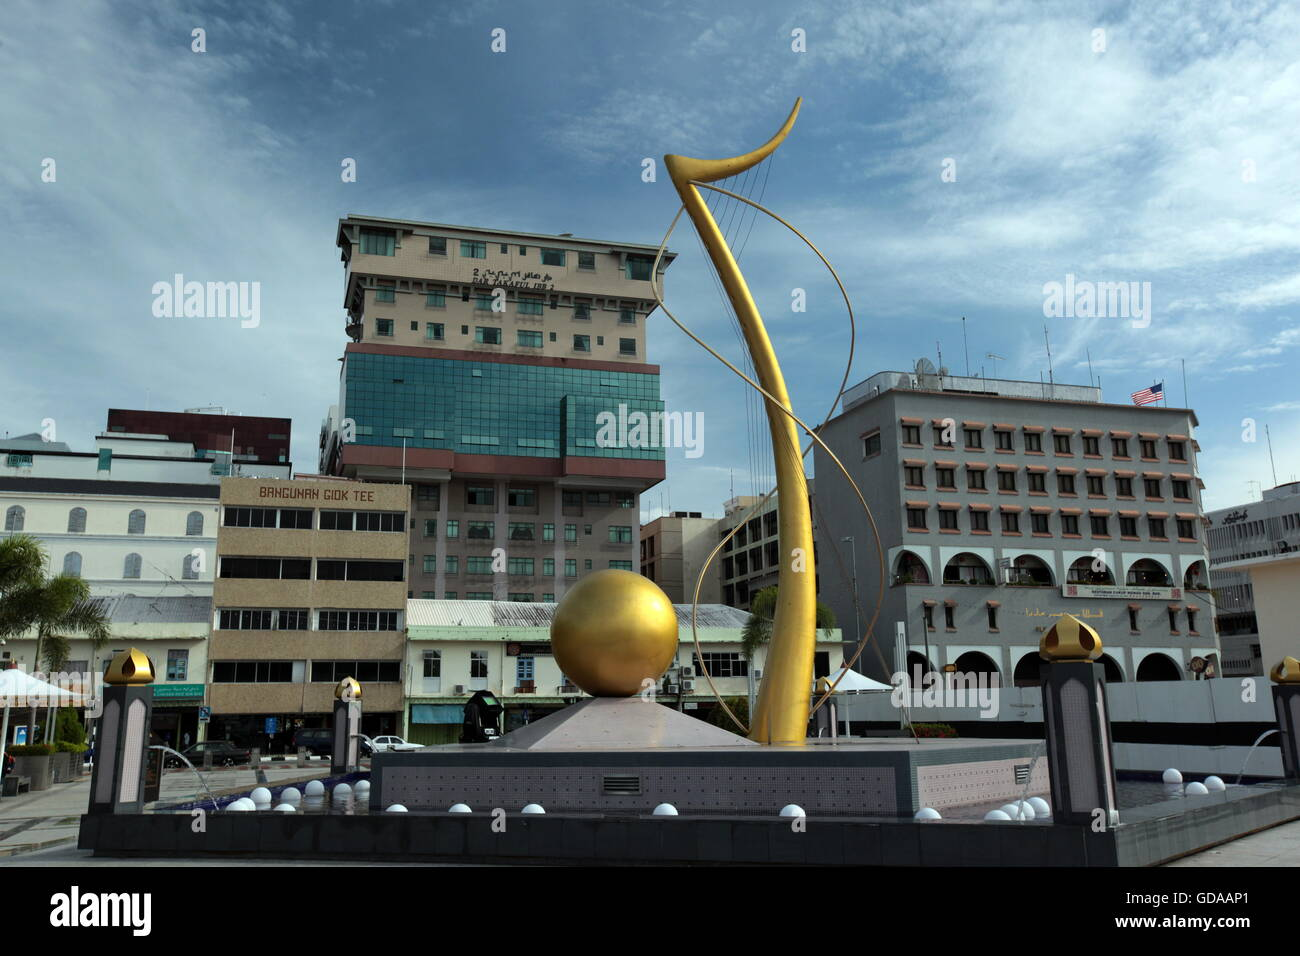 the city centre square in the city of Bandar seri Begawan in the country of Brunei Darussalam on Borneo in Southeastasia. - Stock Image